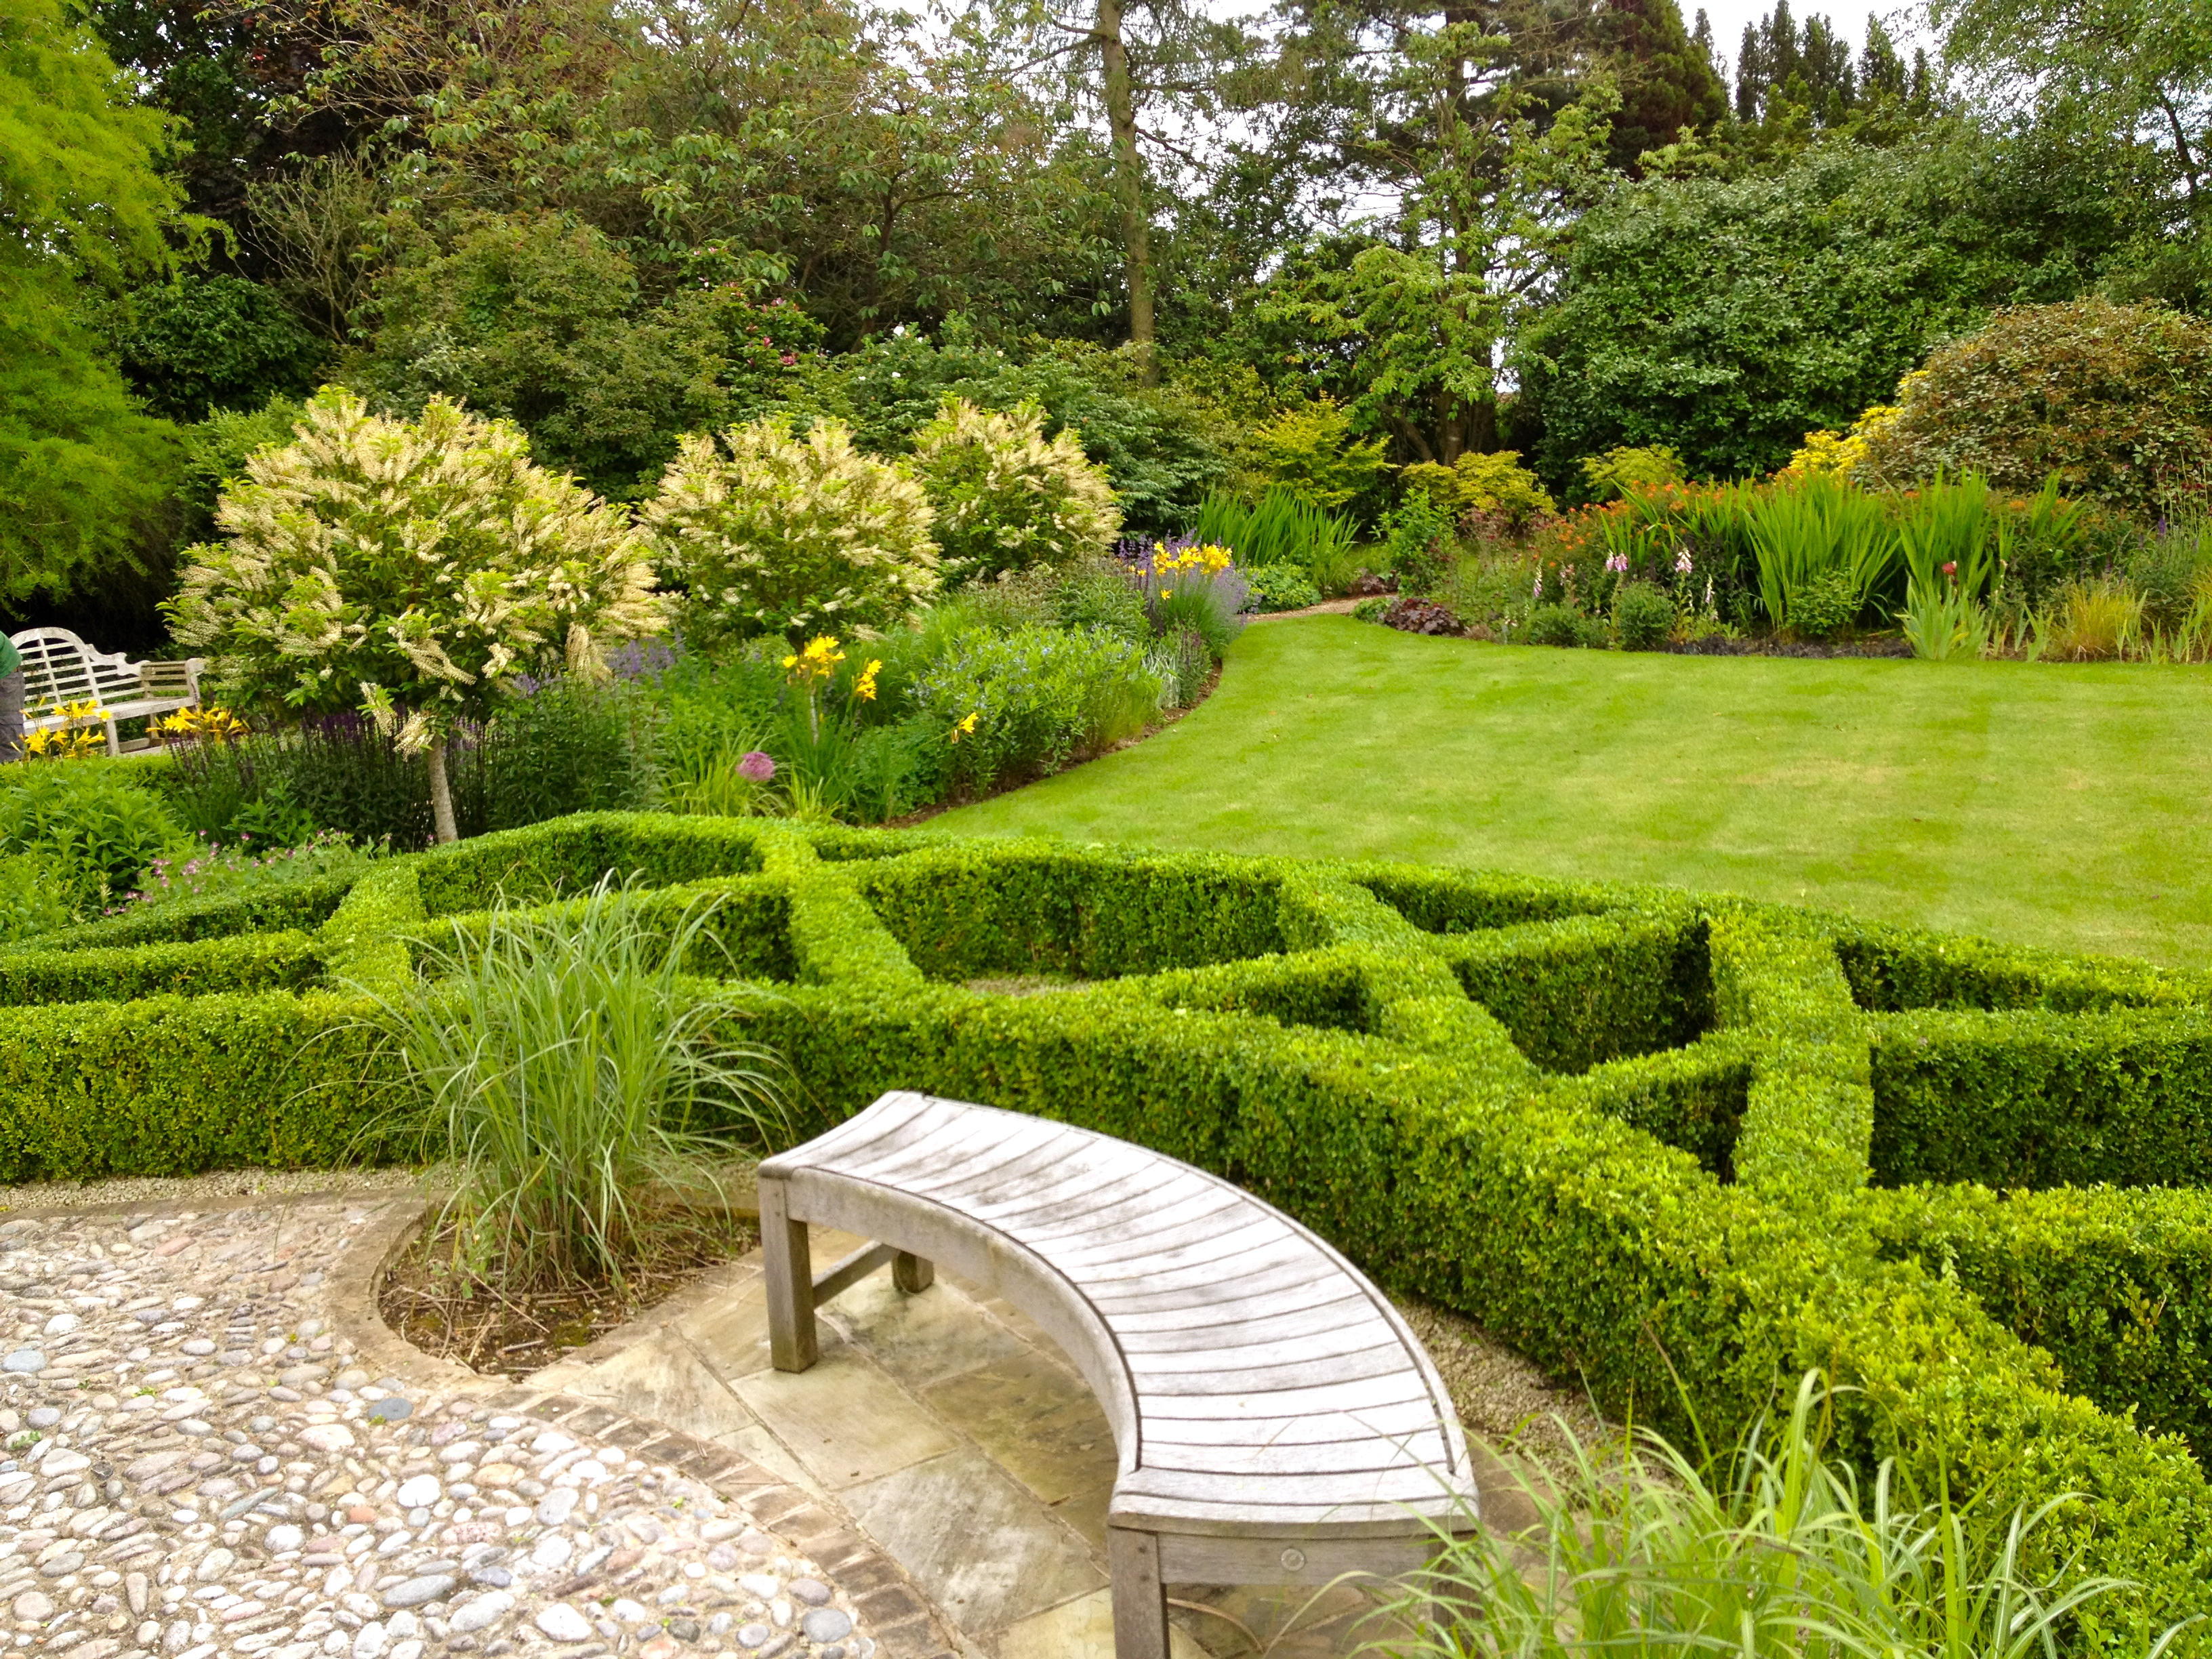 Hard soft garden landscape services bury st edmunds suffolk for Gardening and landscaping services